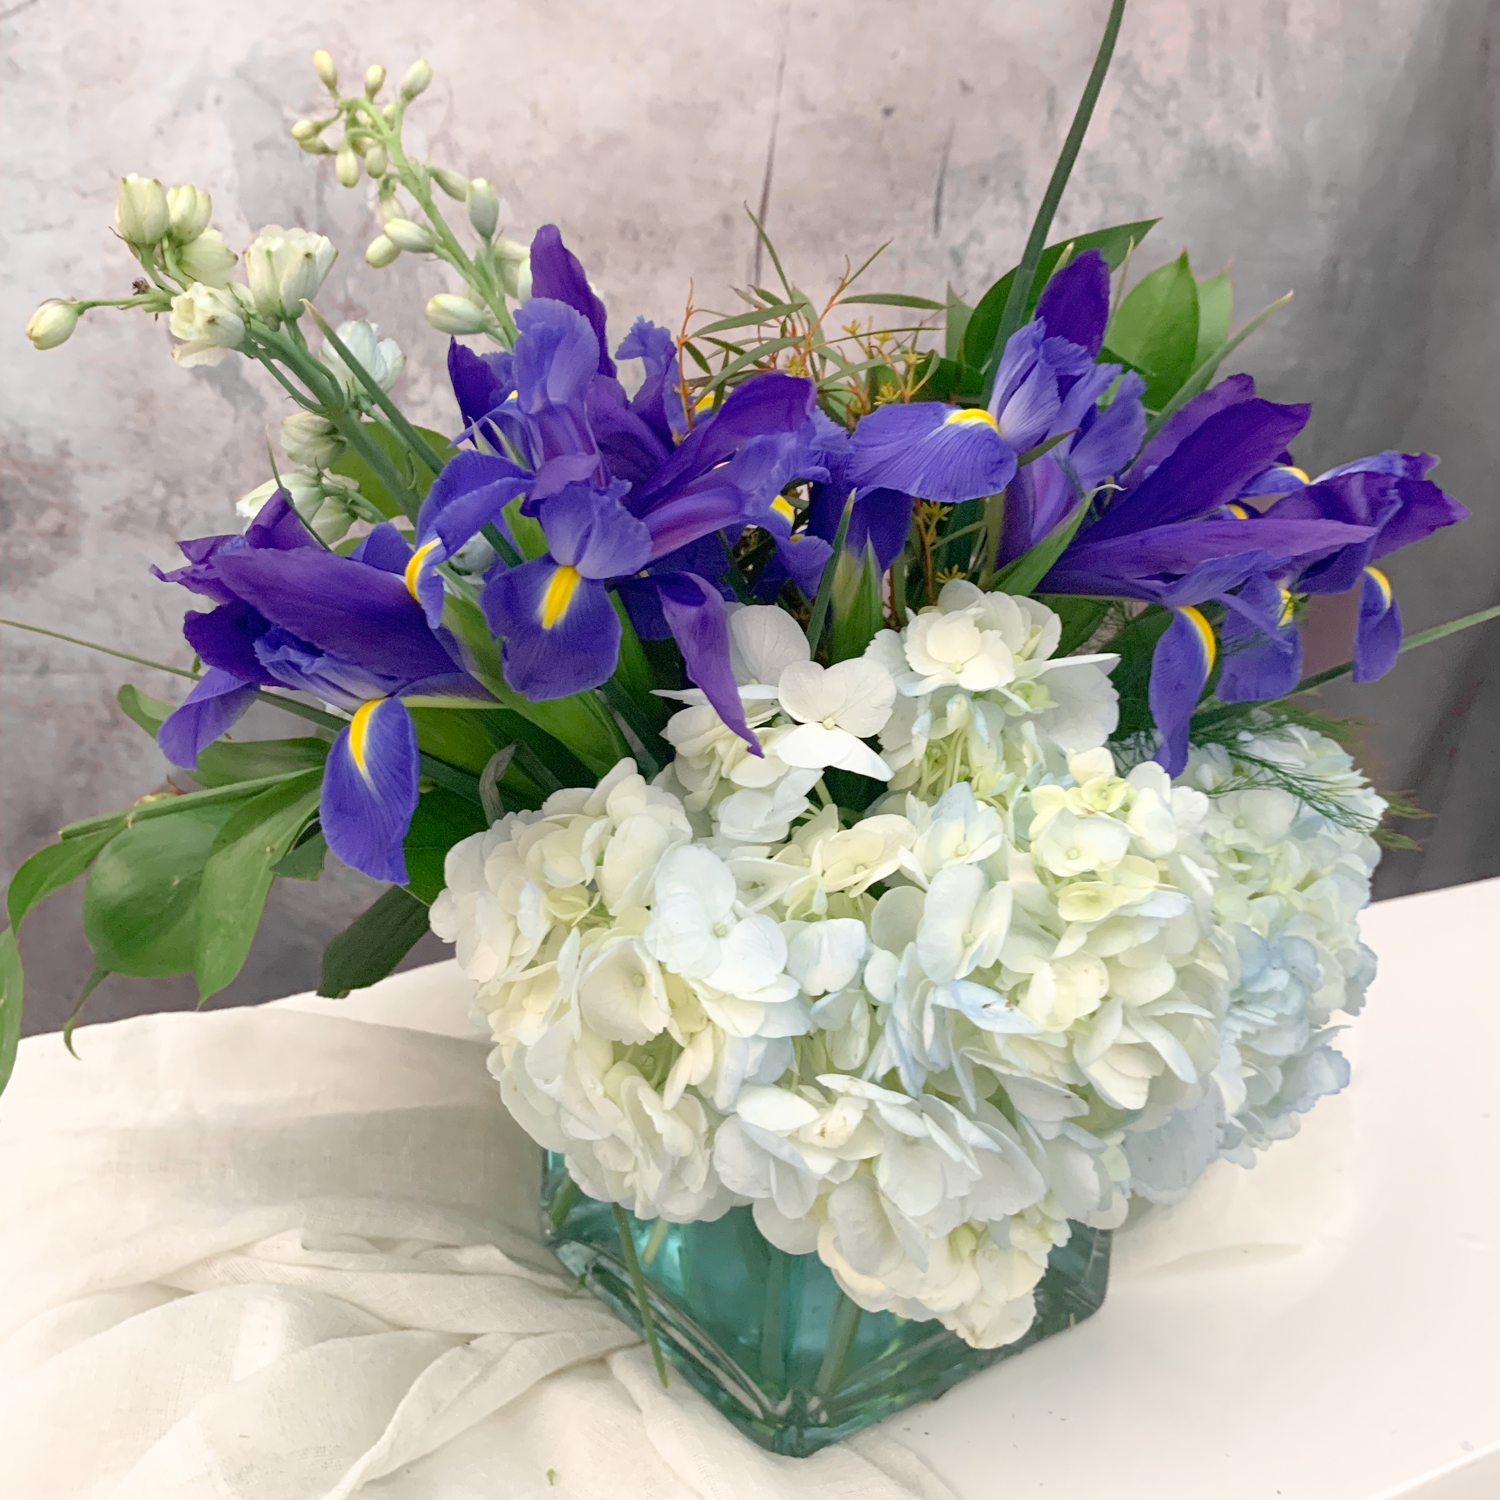 Blue flowers arranged in a square glass vase with tinted blue water - Petalino Flower Bar